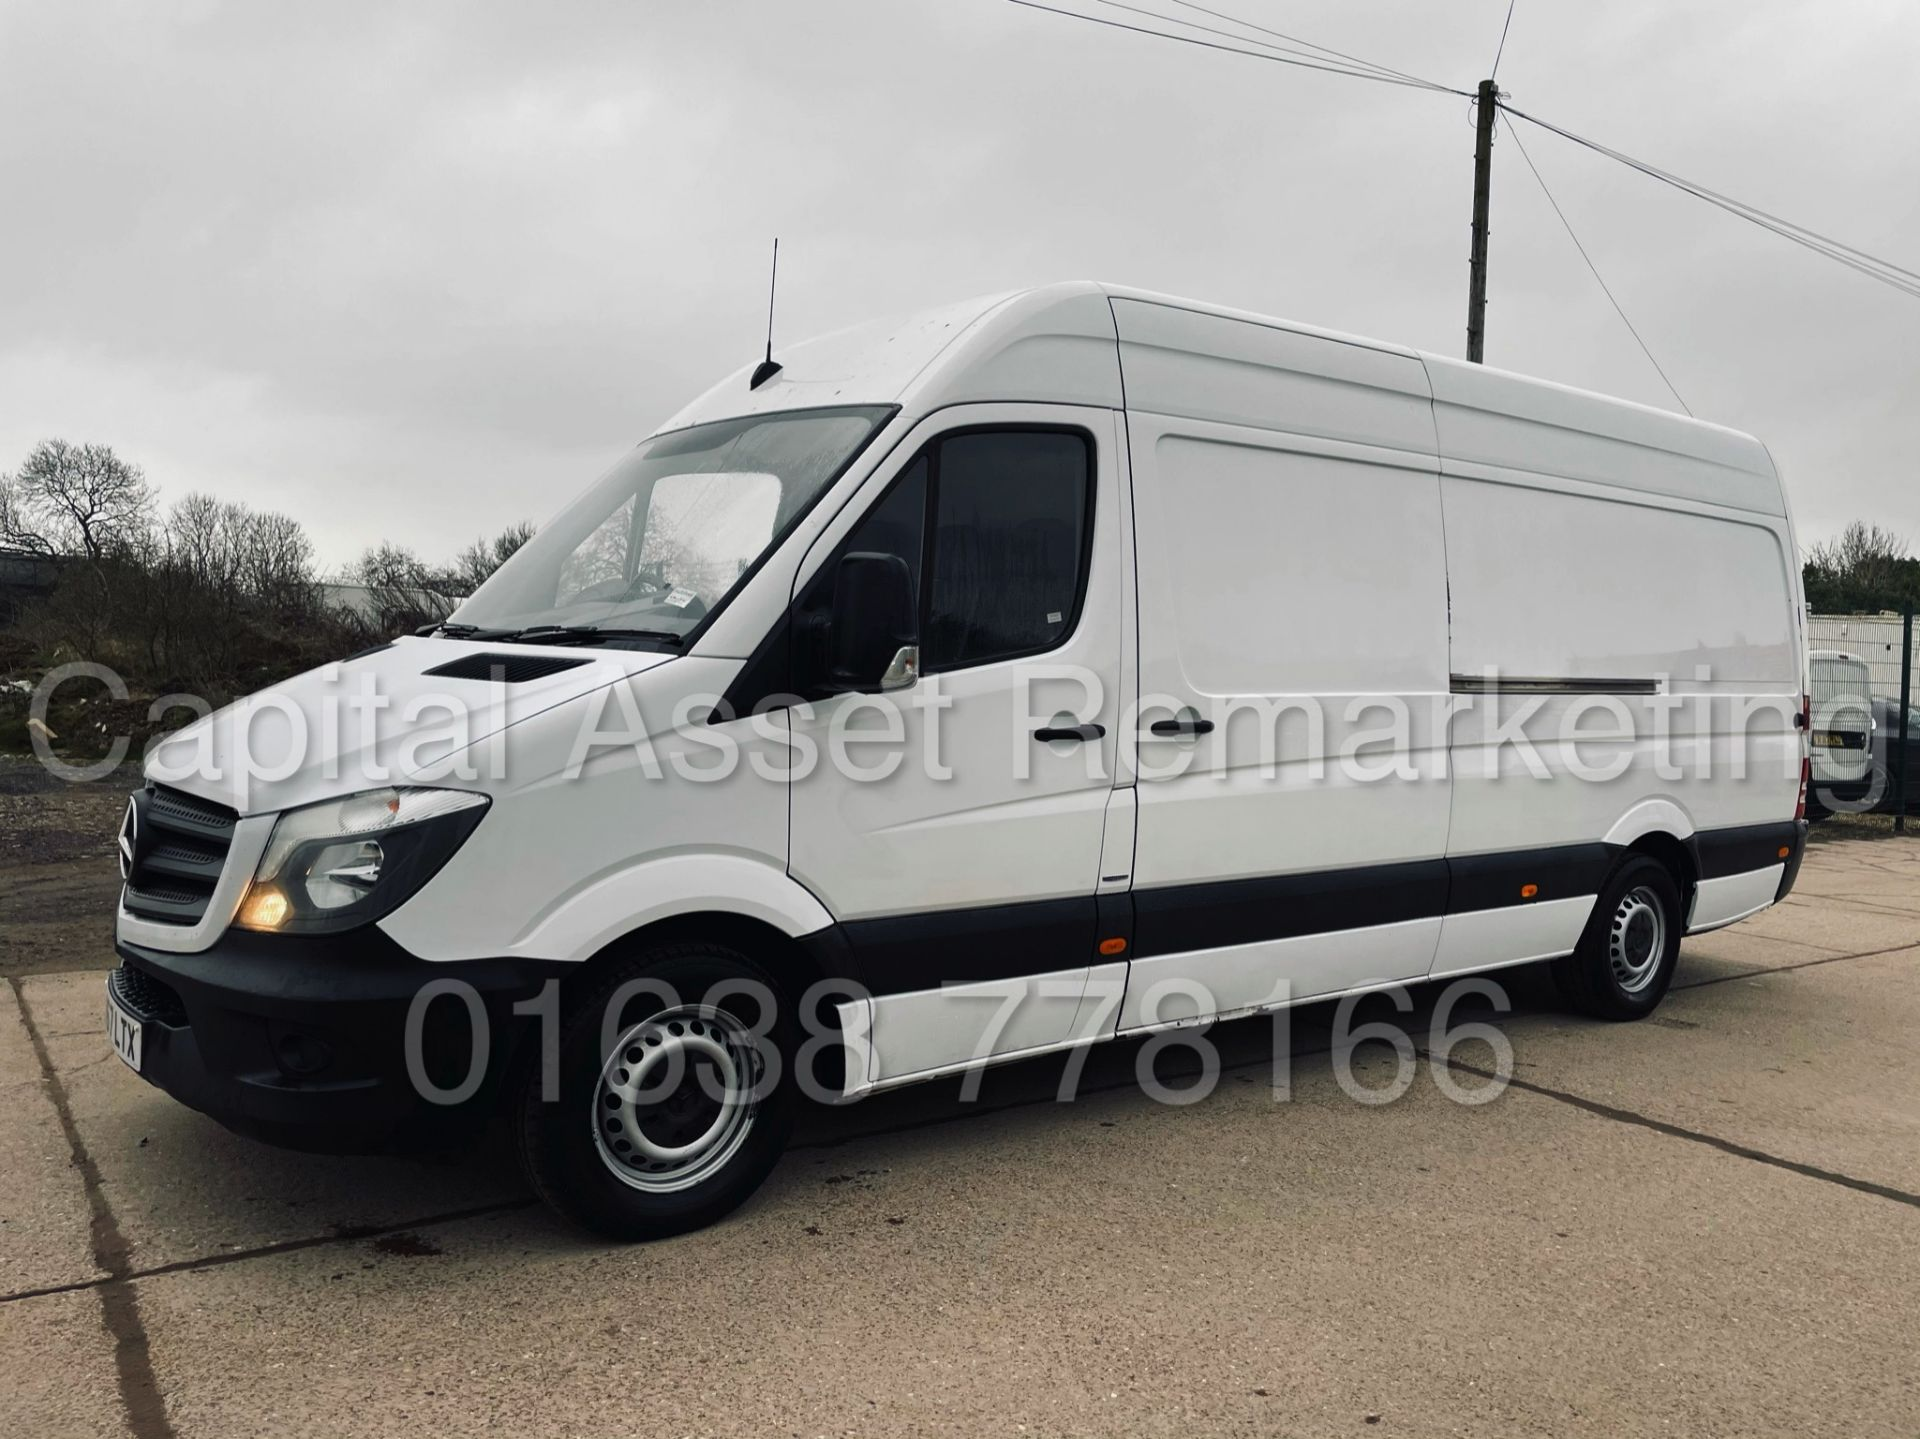 (On Sale) MERCEDES-BENZ SPRINTER 314 CDI *LWB HI-ROOF* (67 REG - EURO 6) '140 BHP-6 SPEED' (1 OWNER) - Image 7 of 37